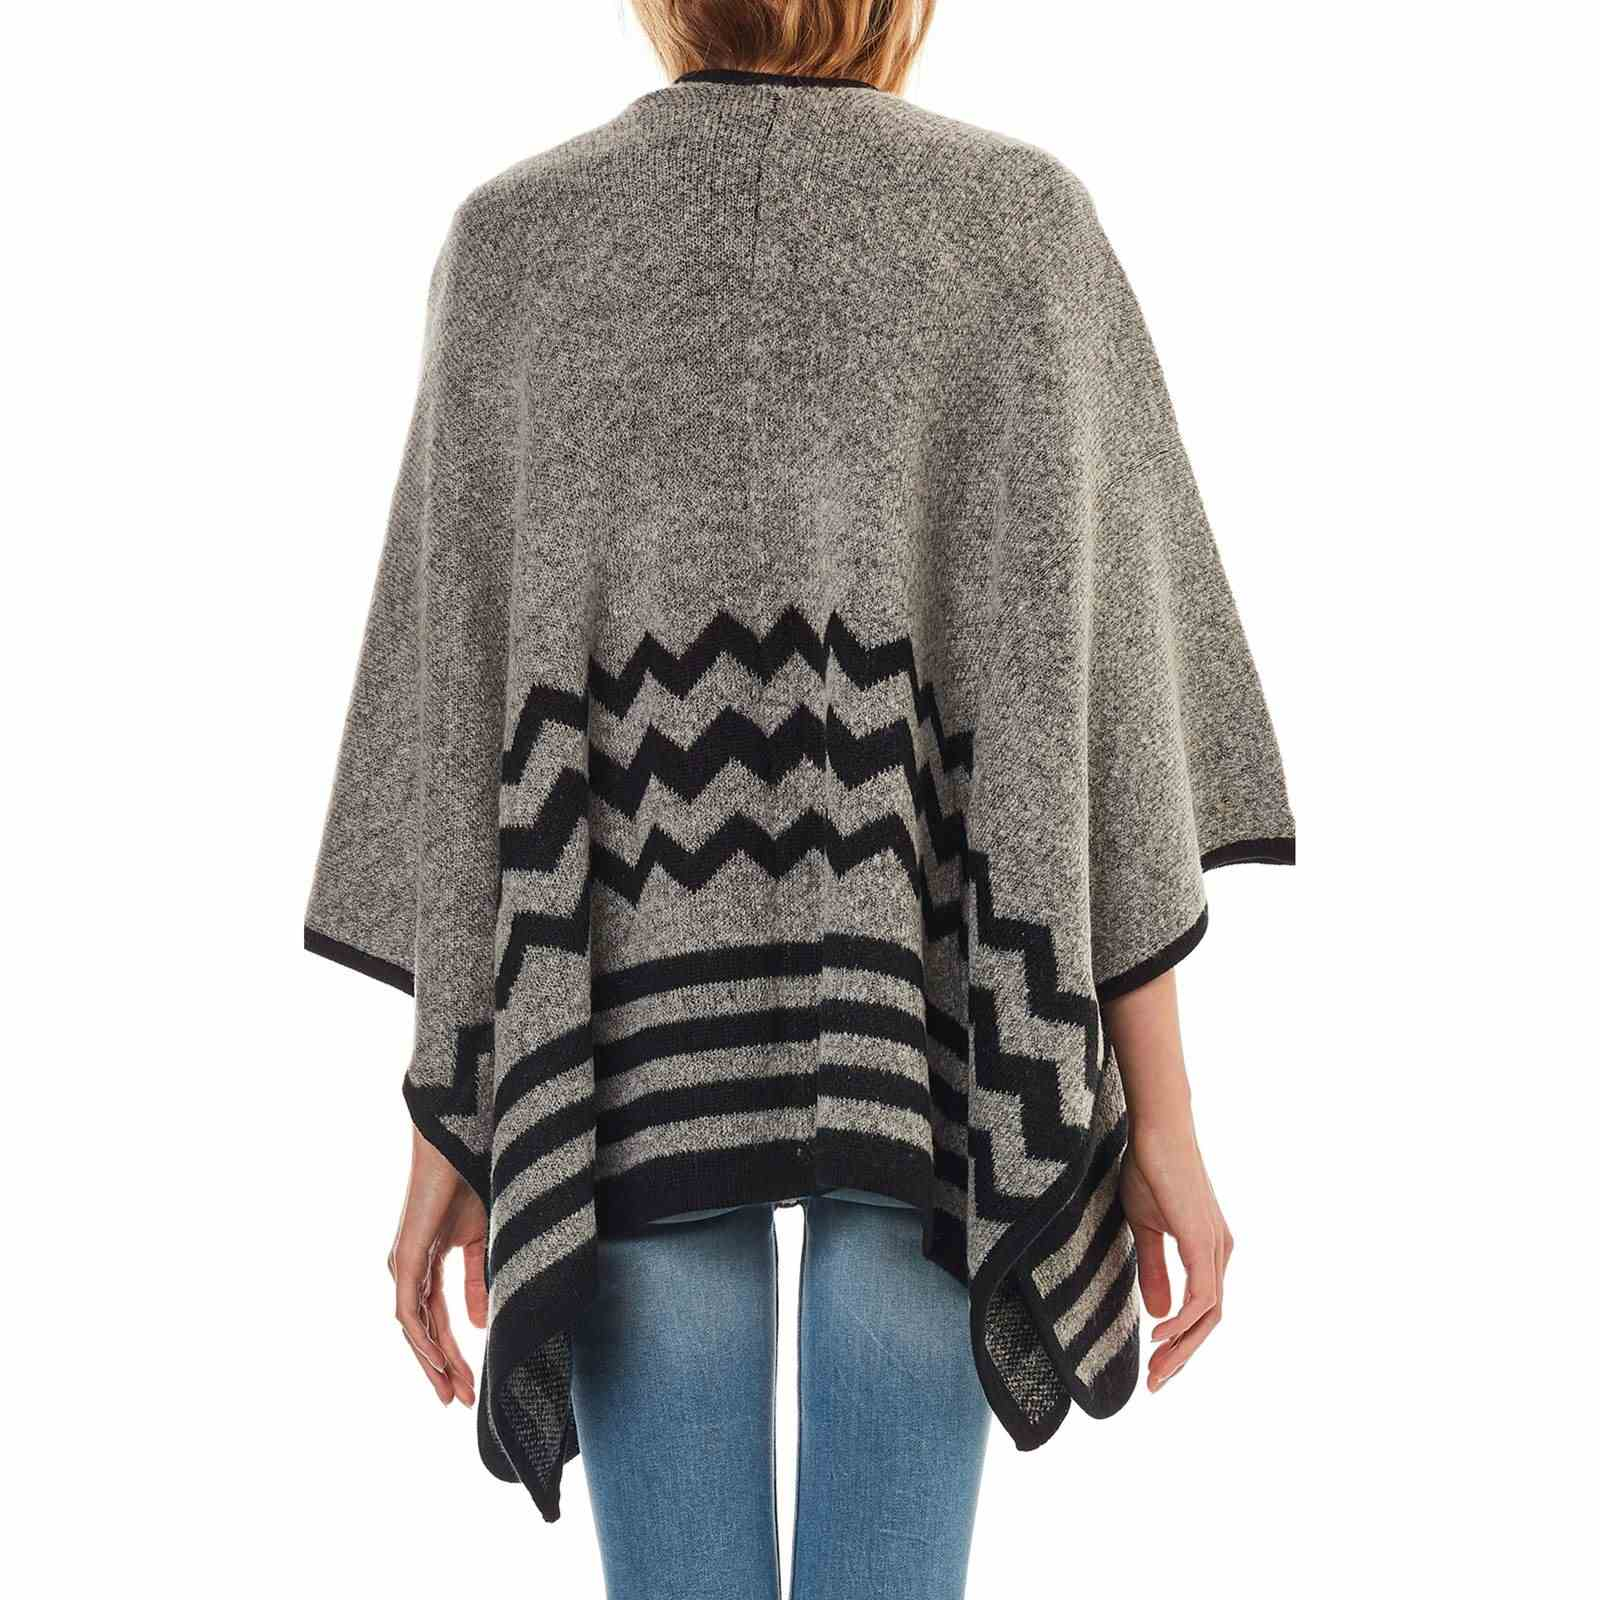 Pull Pull Gris Gris Best Pull Best Best Mountain Gris Mountain Mountain E7fxqwPq4v